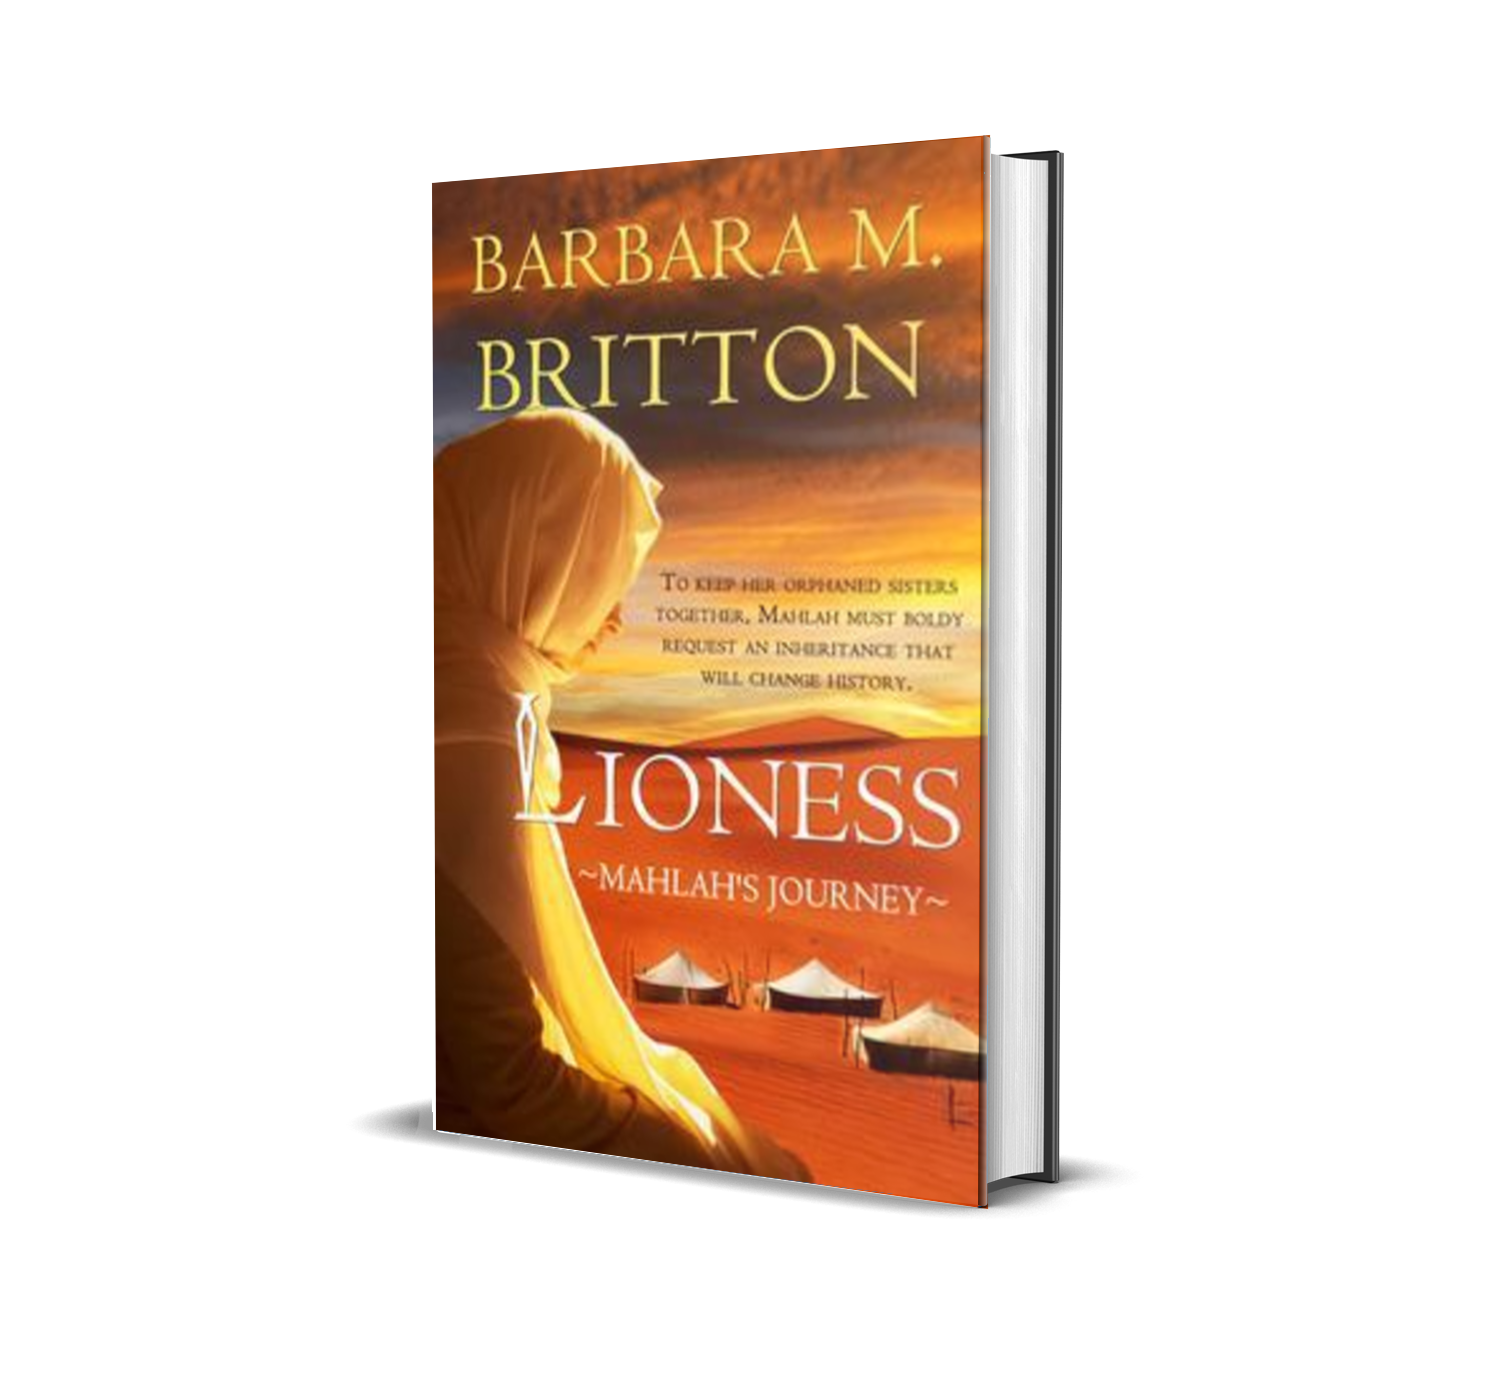 Lioness: Mahlah's Journey by Barbara M. Britton